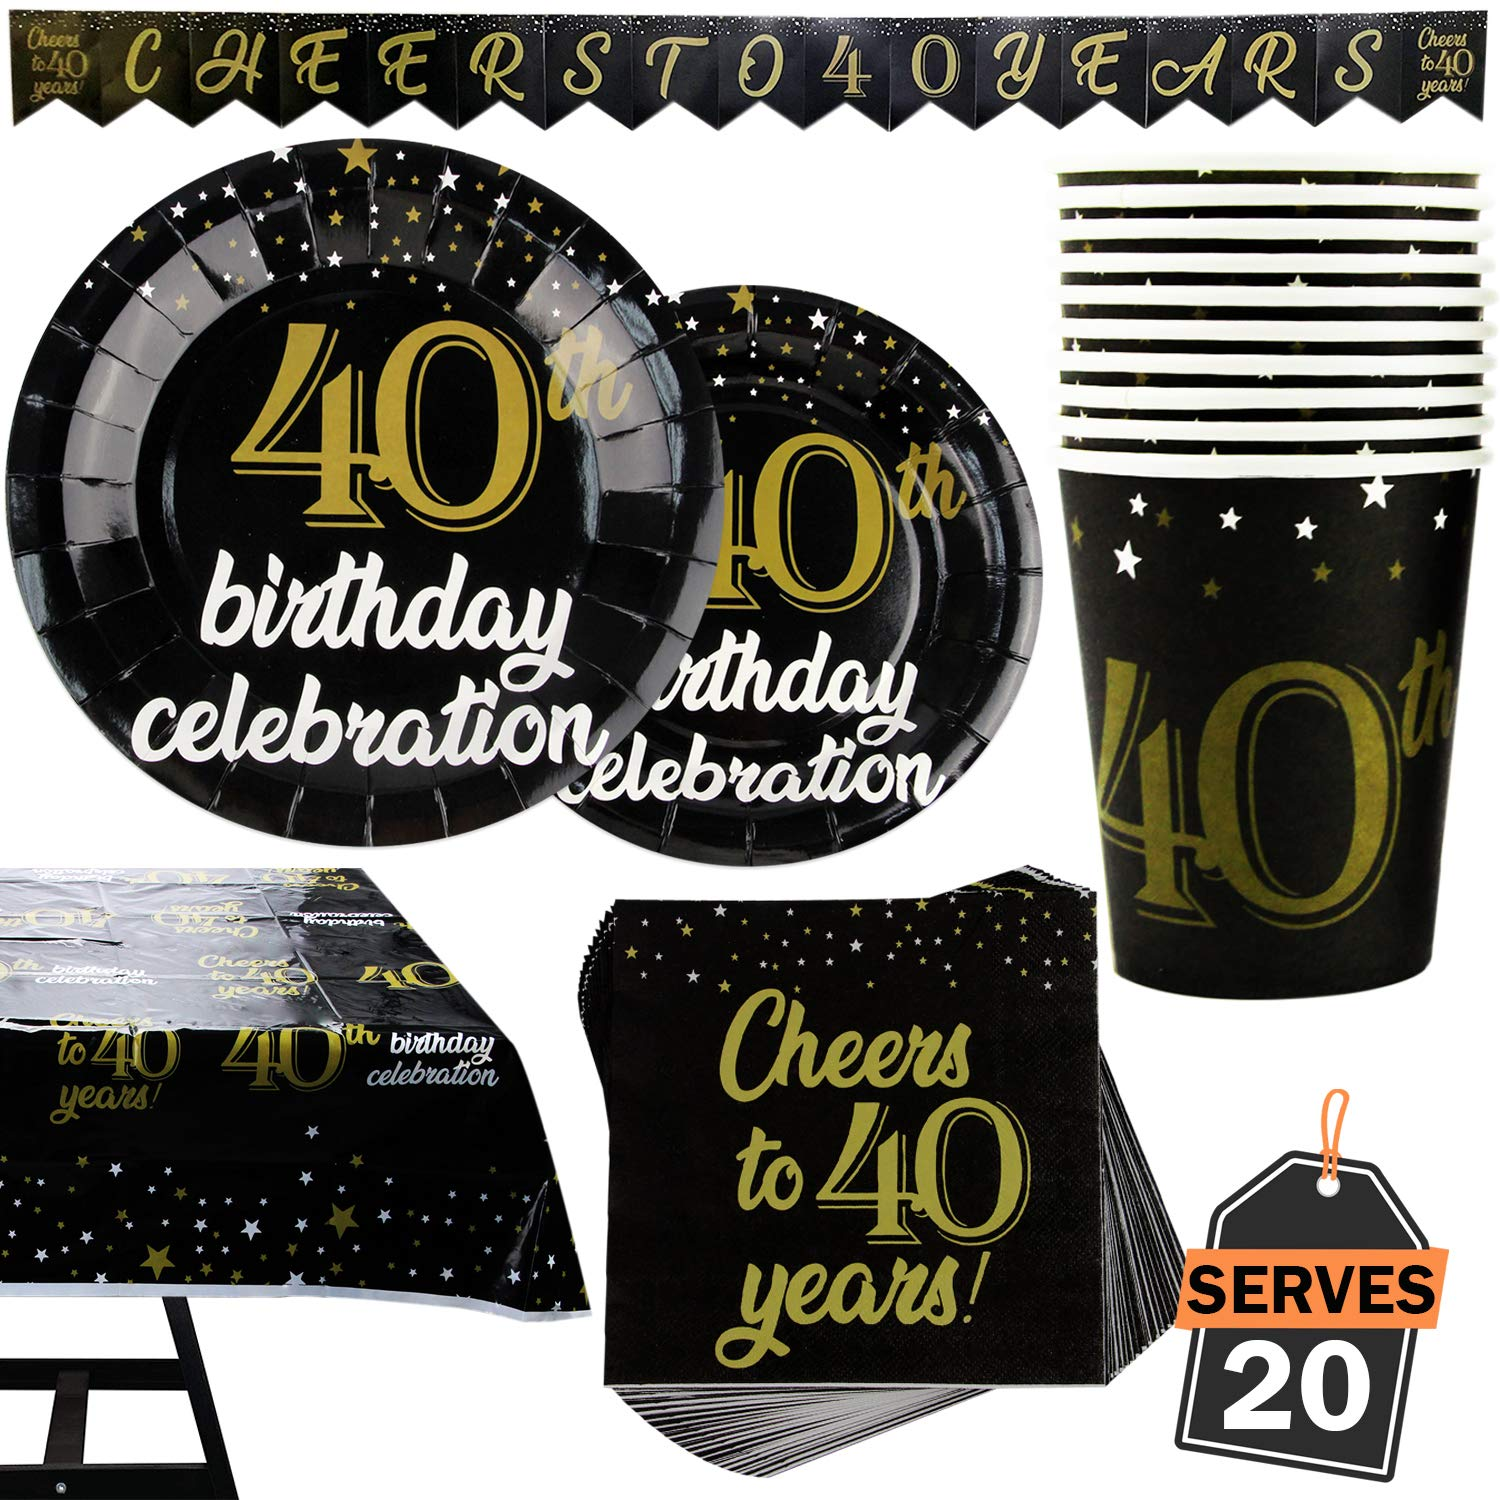 82 Piece 40th Birthday Party Supplies Set Including Plates, Cups, Napkins,Banner and Tablecloth, Serves 20 by Scale Rank